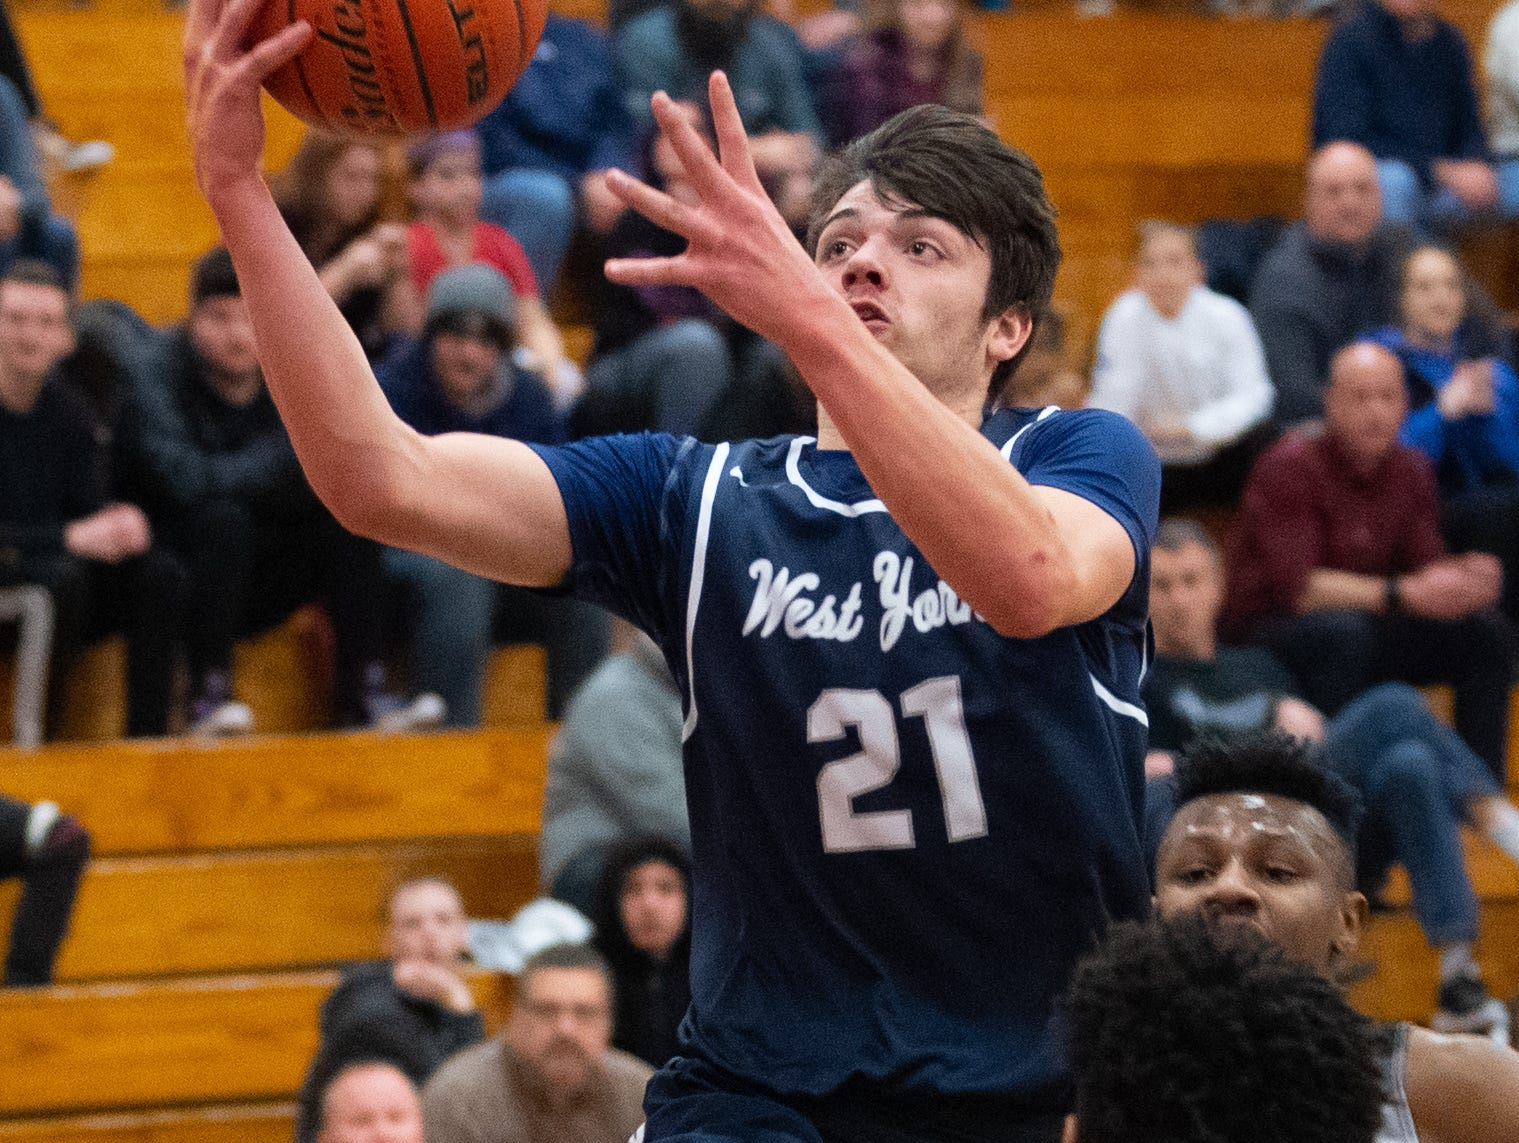 Jared Shearer (21) glides to the basket during the boys' basketball game between Dover and West York, February 1, 2019. The Eagles defeated the Bulldogs 65 to 58.